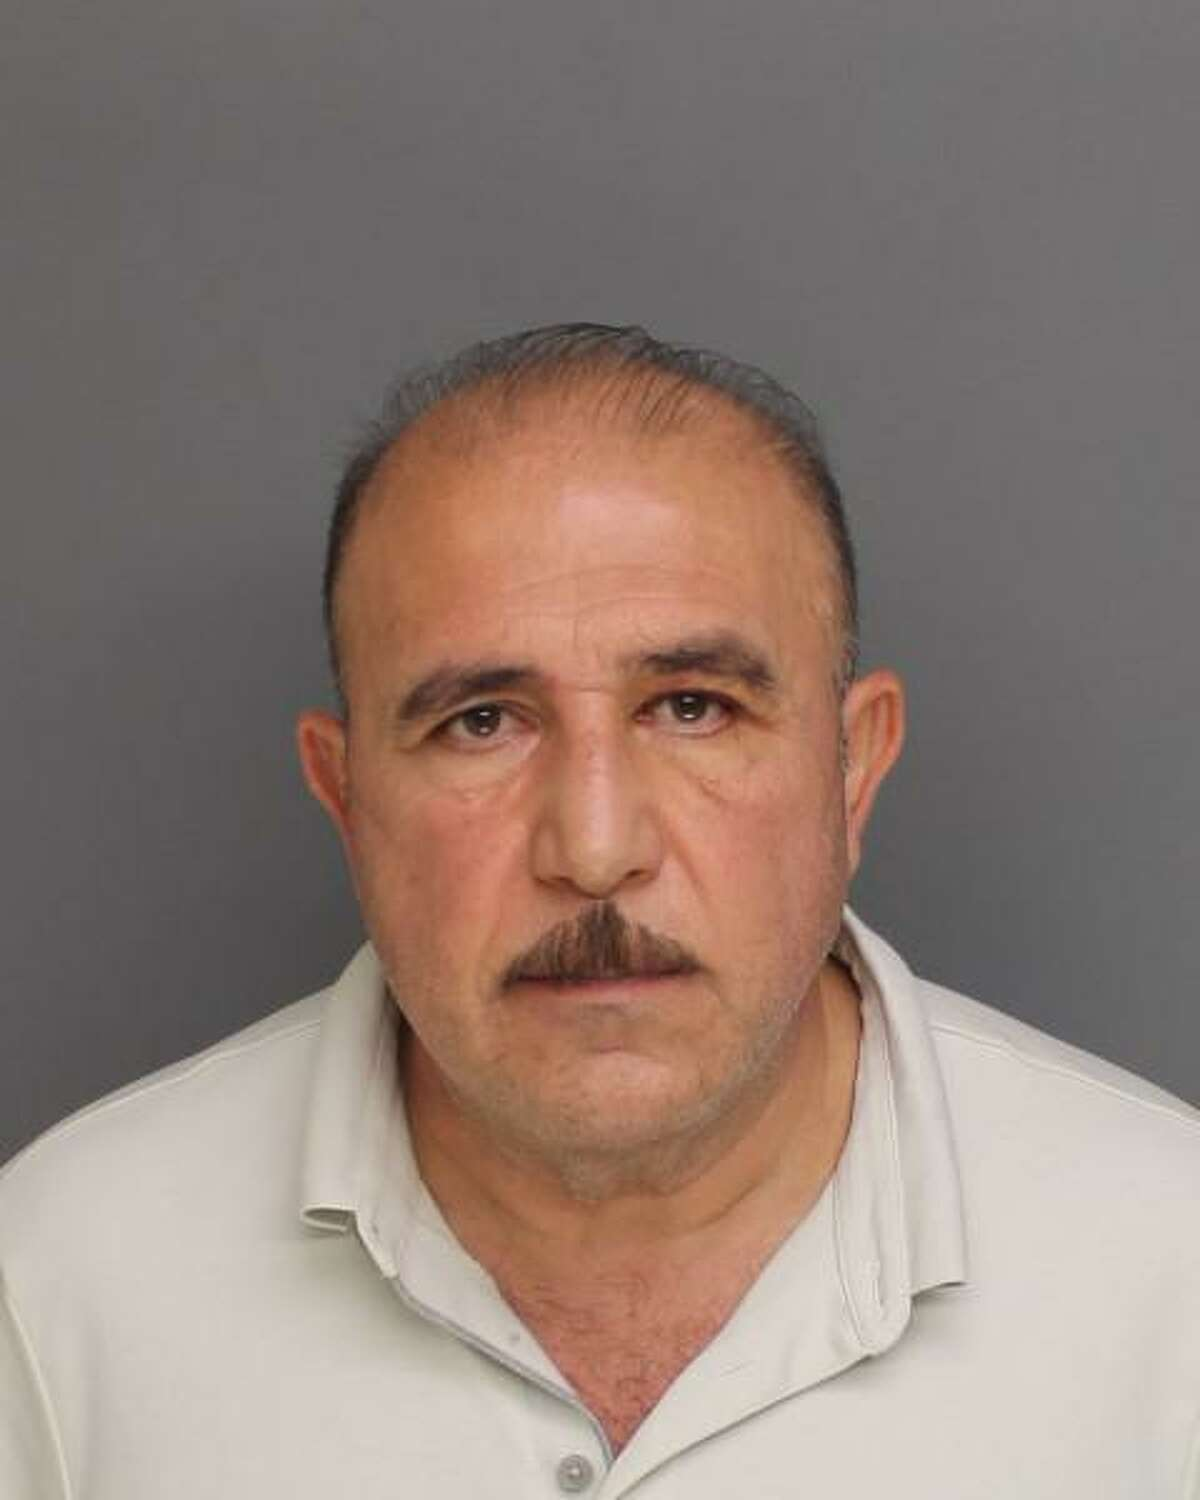 Hennawi Salem was taken in to custody at Salem Furniture, 120 Porter St. in Bridgeport, Conn., on Monday, July 26, 2021, on a warrant charging him with third-degree sexual assault, fourth-degree sexual assault and two counts of disorderly conduct. His bond was set at $100,000.